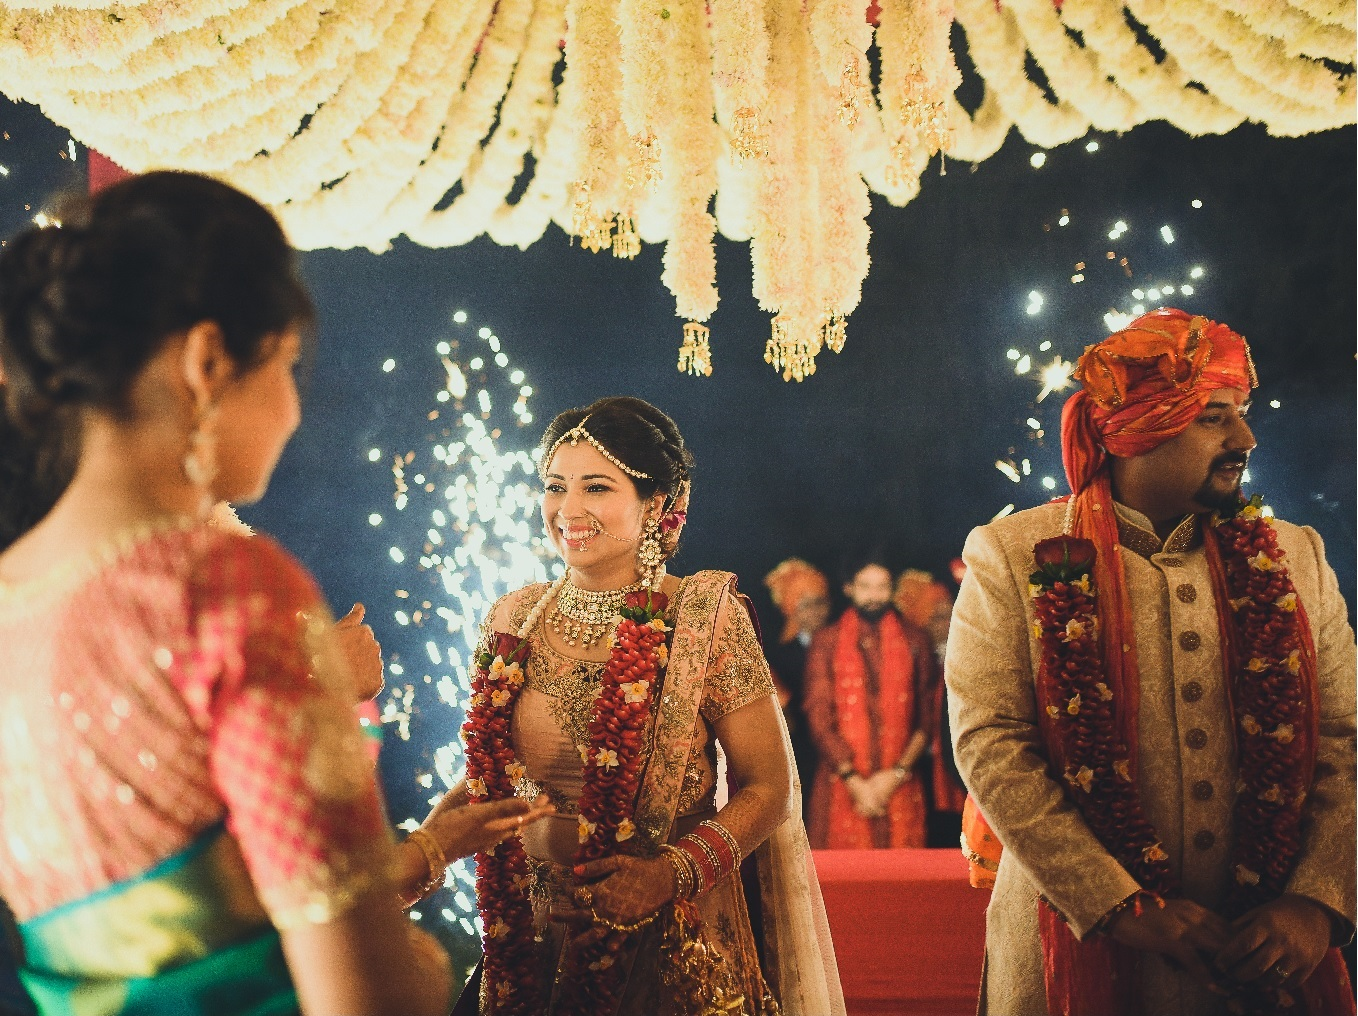 An Indian wedding ceremony with fireworks. Photo: The Wedding Matinee